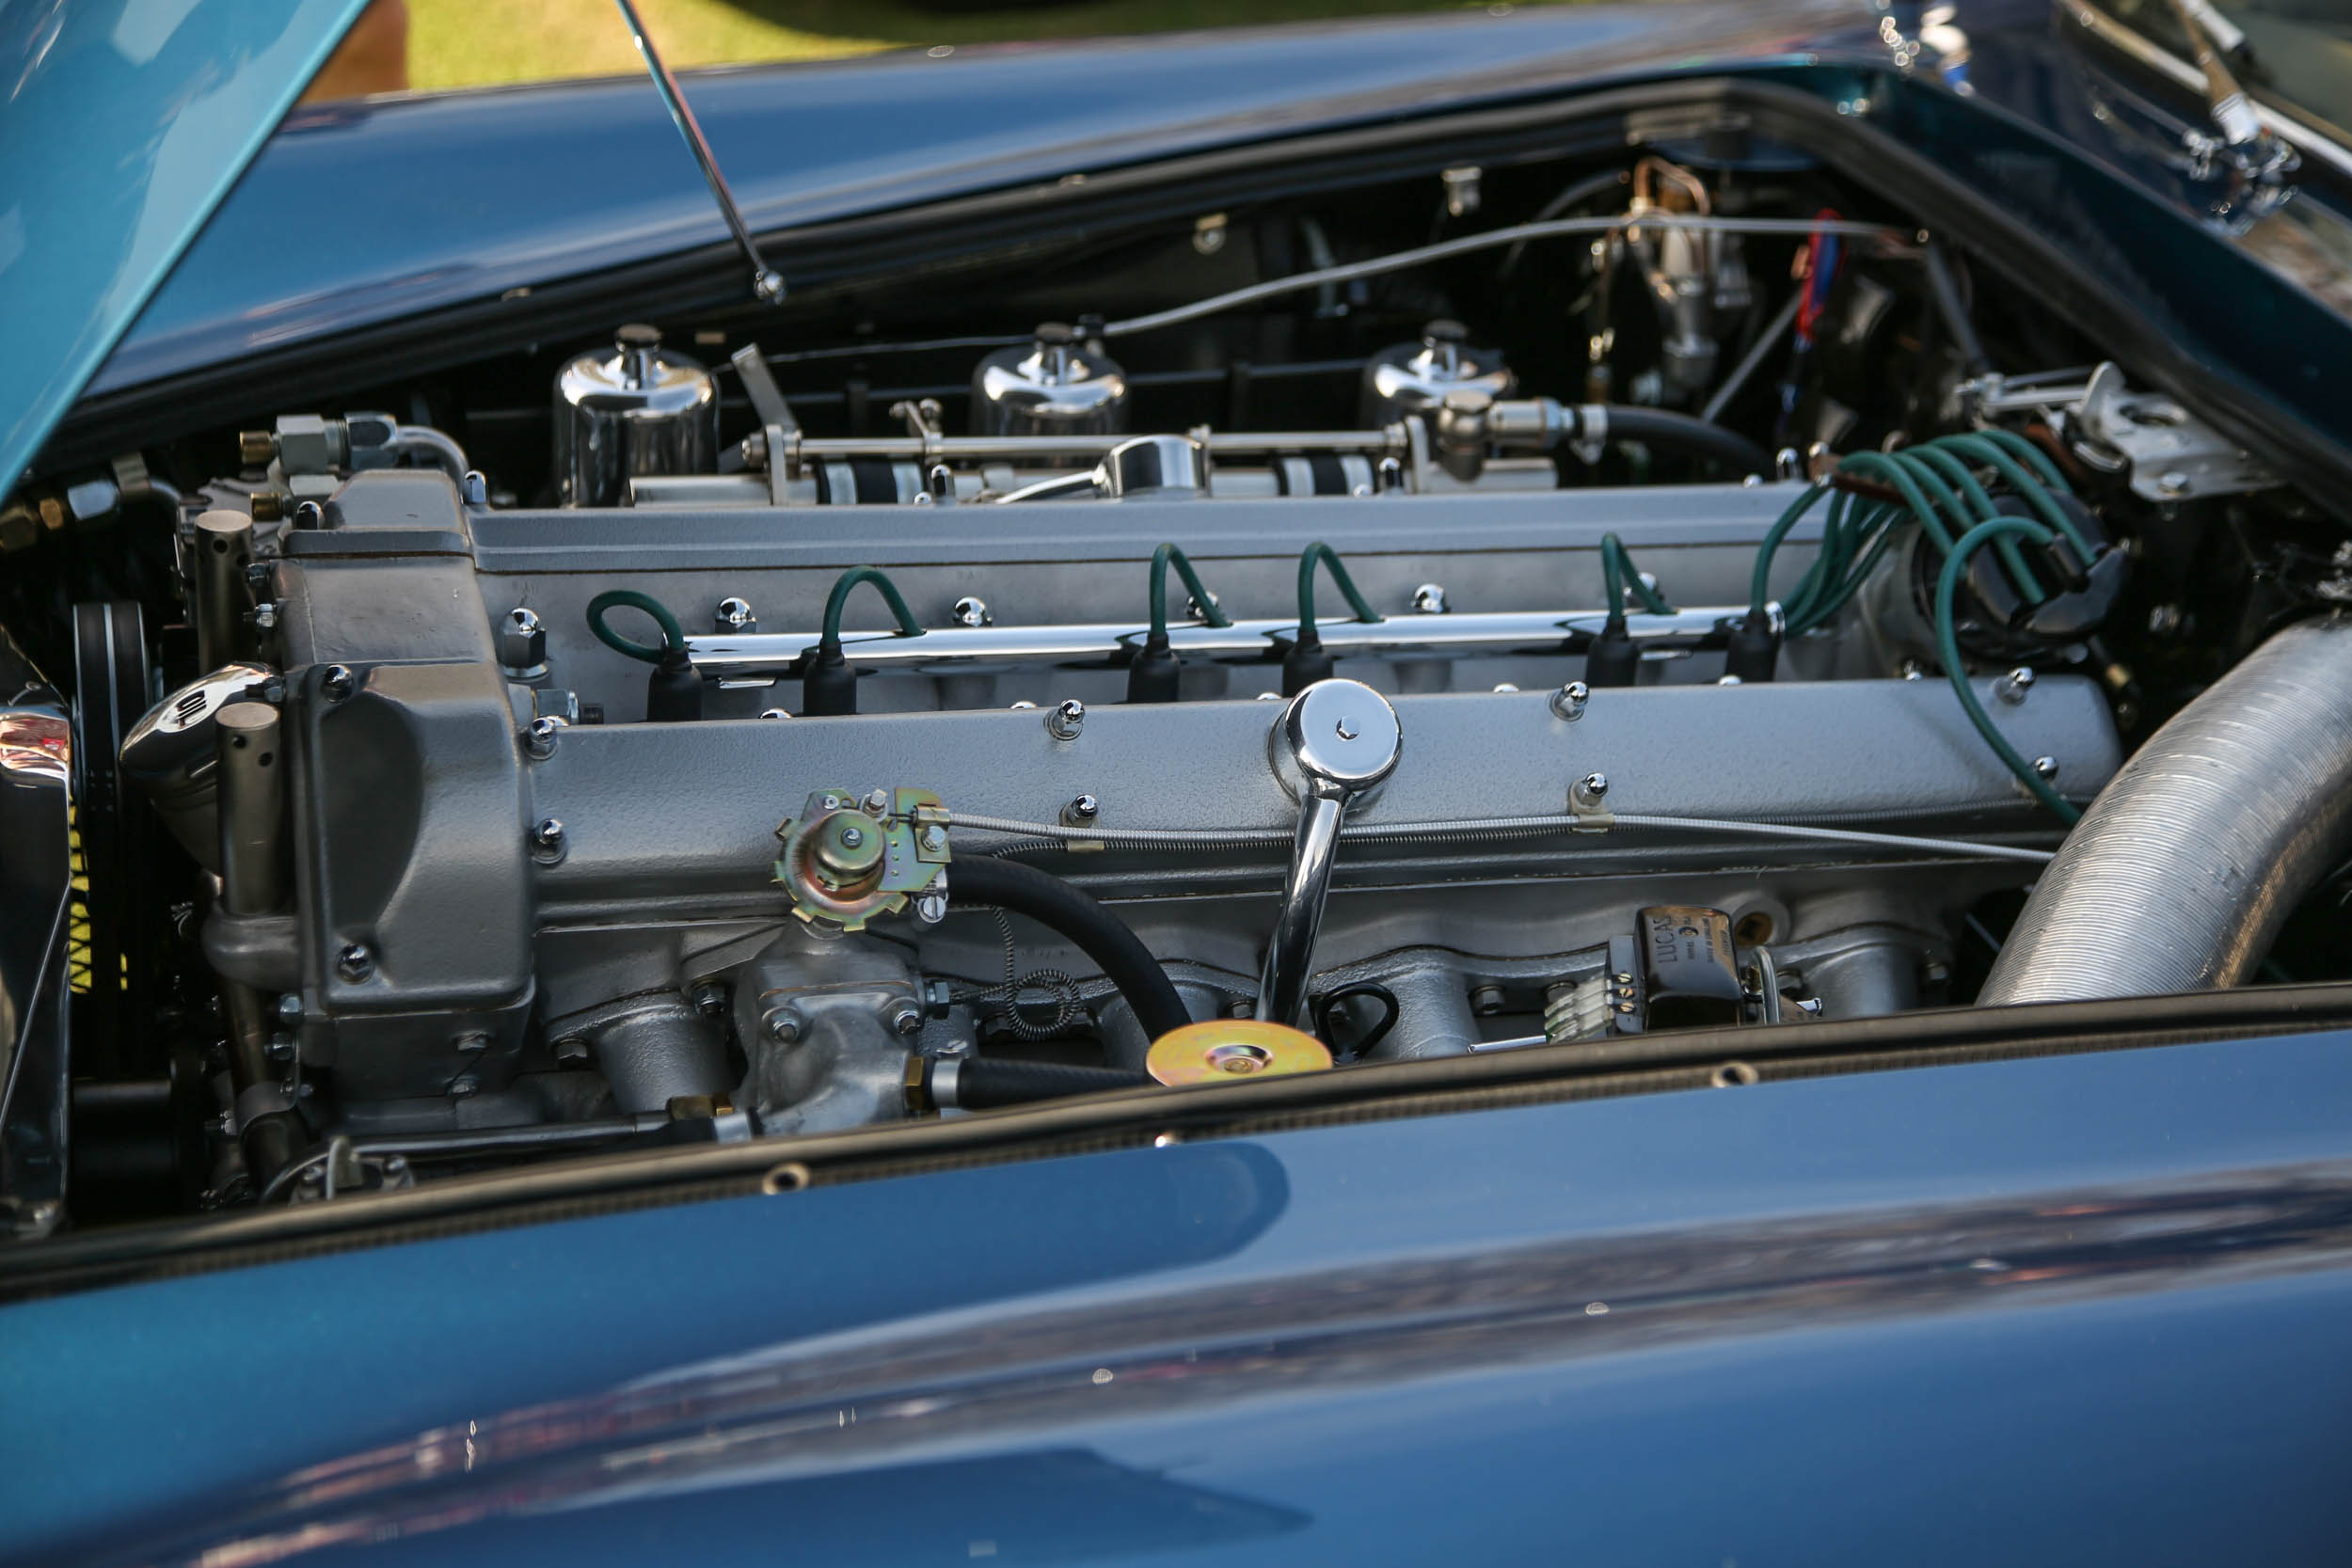 Aston Martin used an inline-six engine designed by Polish engineer Tadek Marek. In DB5 trim it produced 282 gross horsepower.